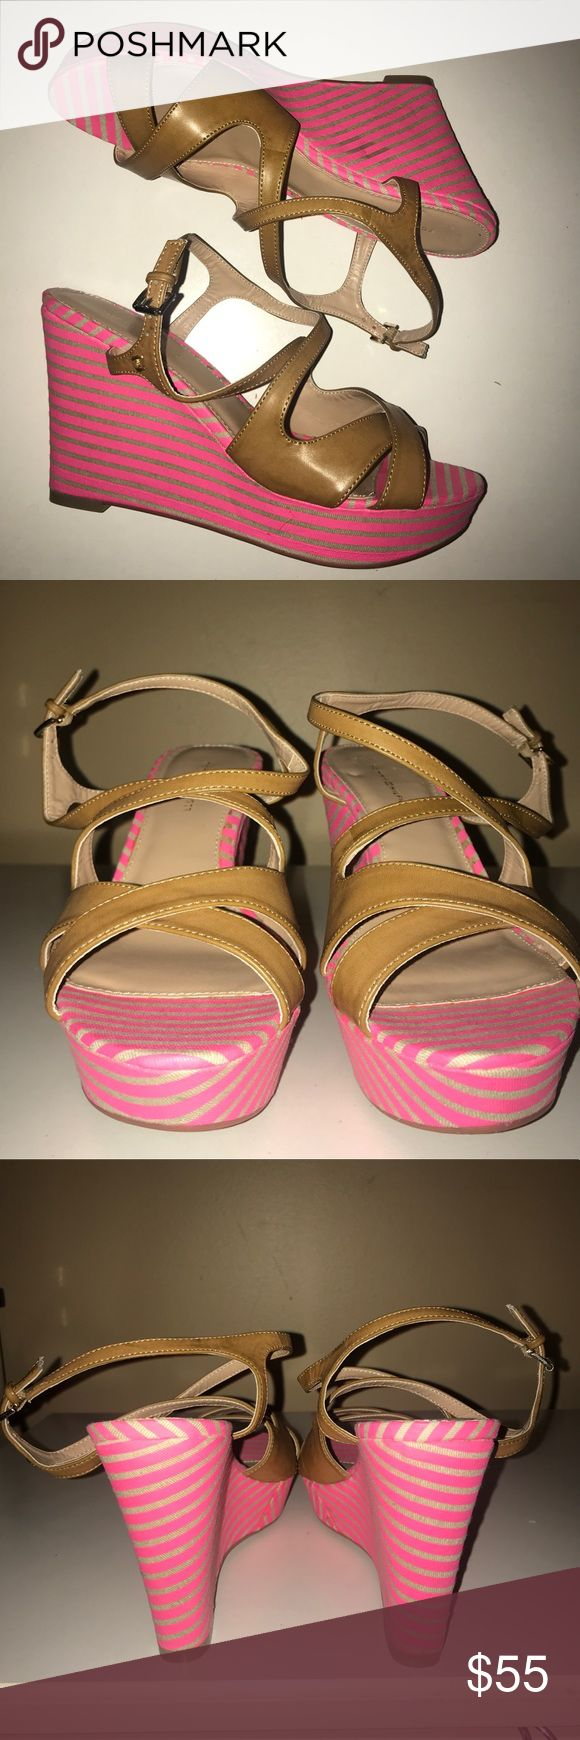 "🆕NWOT🧡TOMMY HILFIGER🧡Pink & Tan Wedges/Sandals 🆕NWOT🧡TOMMY HILFIGER🧡Pink & Tan Wedges/Sandals. Leather crisscrossed straps with adjustable buckle at ankle. Size- 7.5. Heel height- 4"". Original cost $85 Tommy Hilfiger Shoes Wedges"